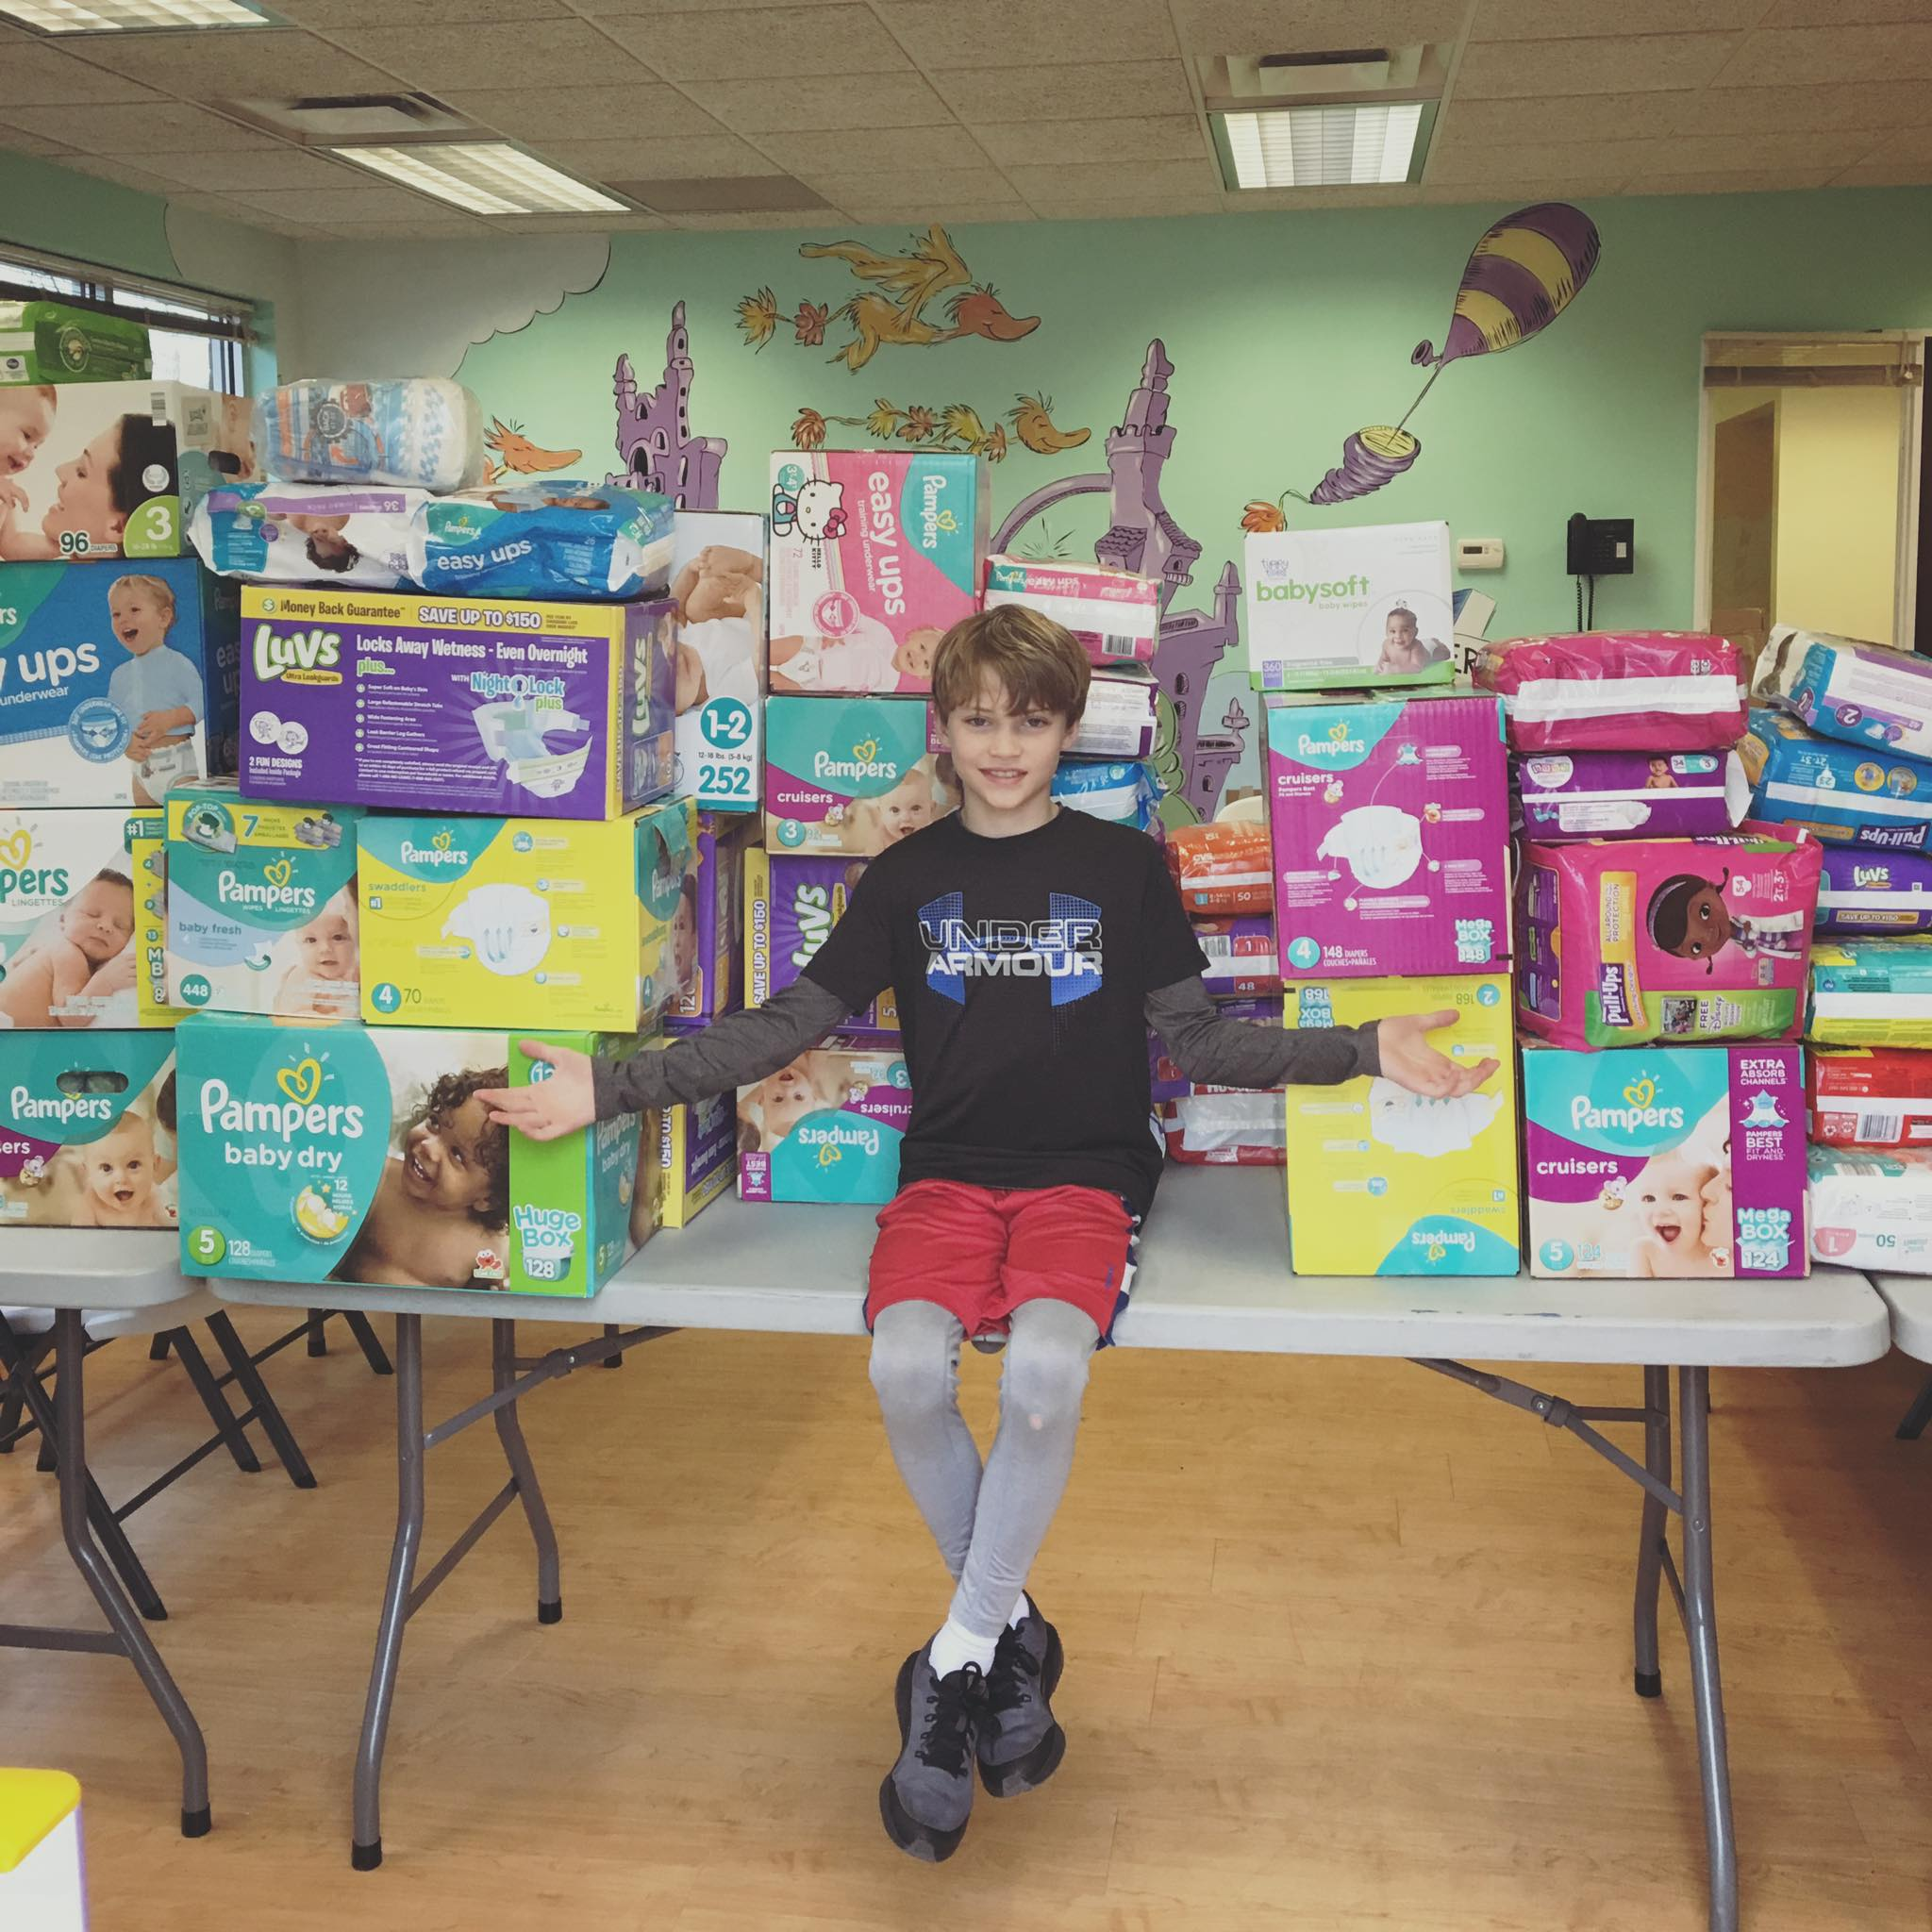 Marshall, turned a $10 investment into more than 5000 diapers through his school project. He made a video for social media and spoke at his church to get donations. It's amazing what one super kid with a dream can accomplish!